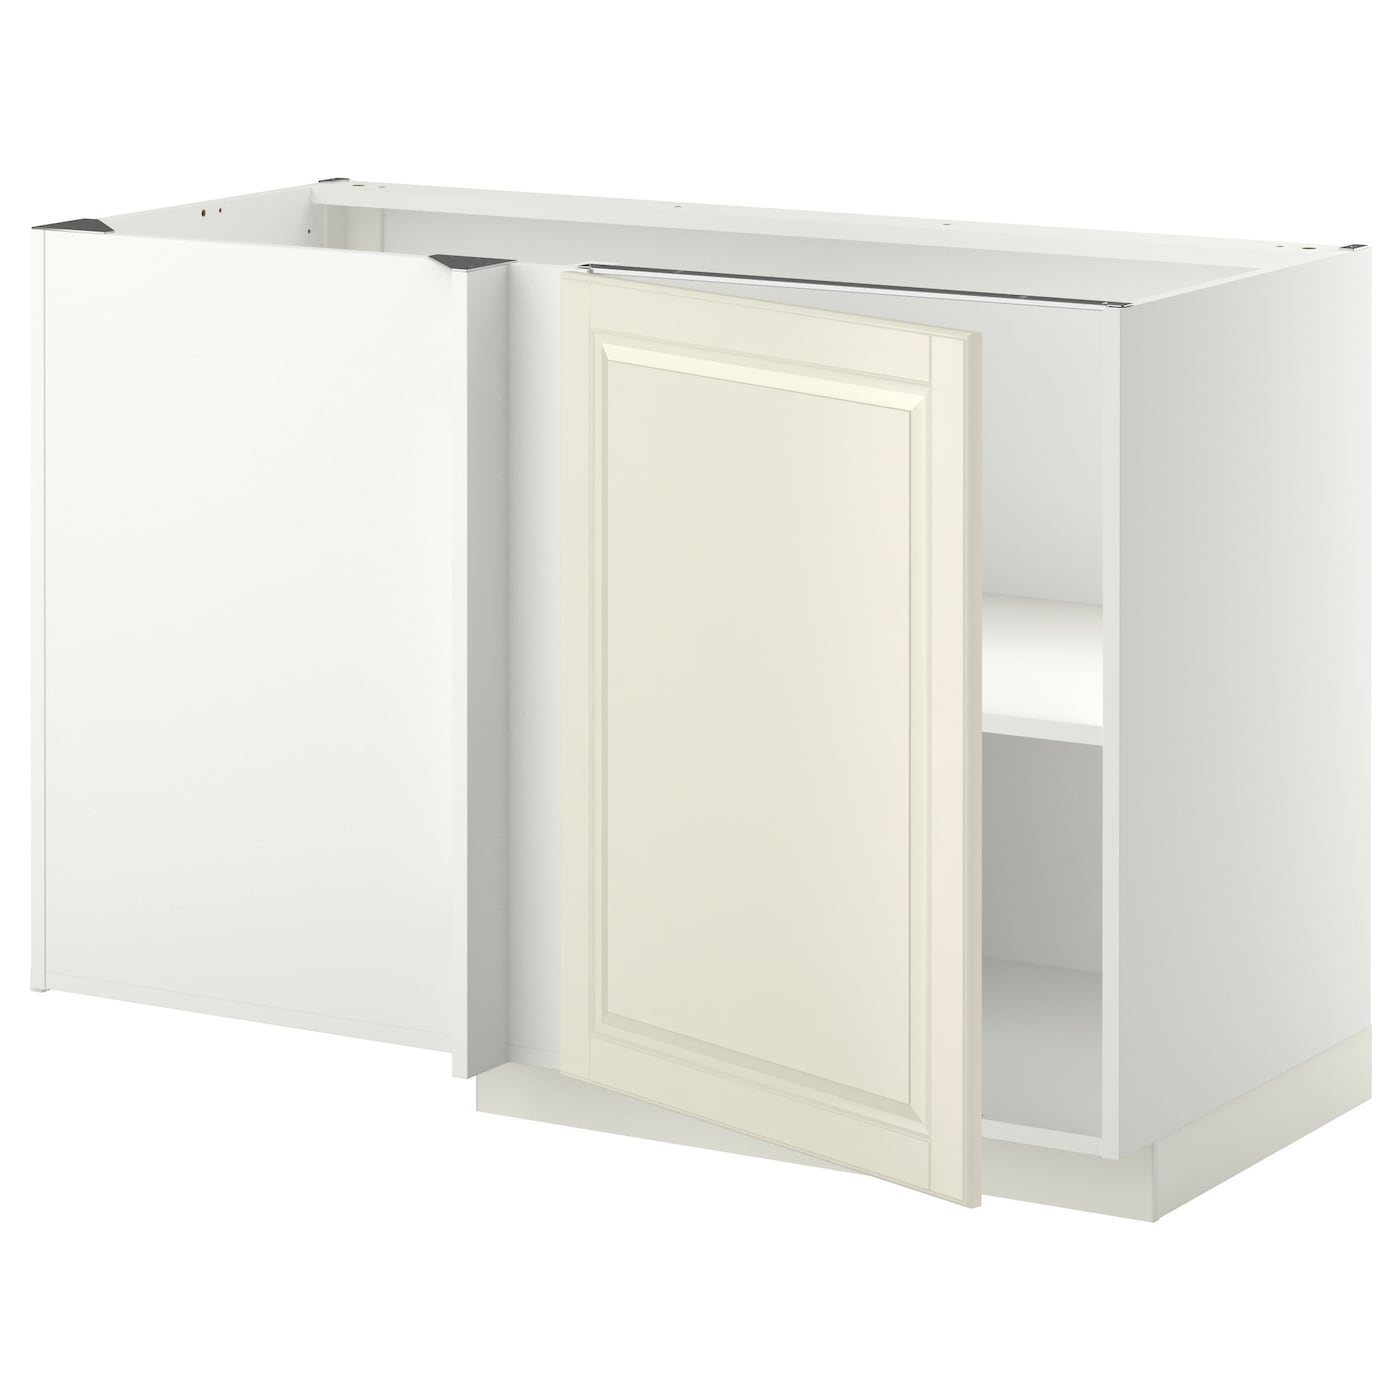 Metod corner base cabinet with shelf white bodbyn off for Off the shelf cabinets